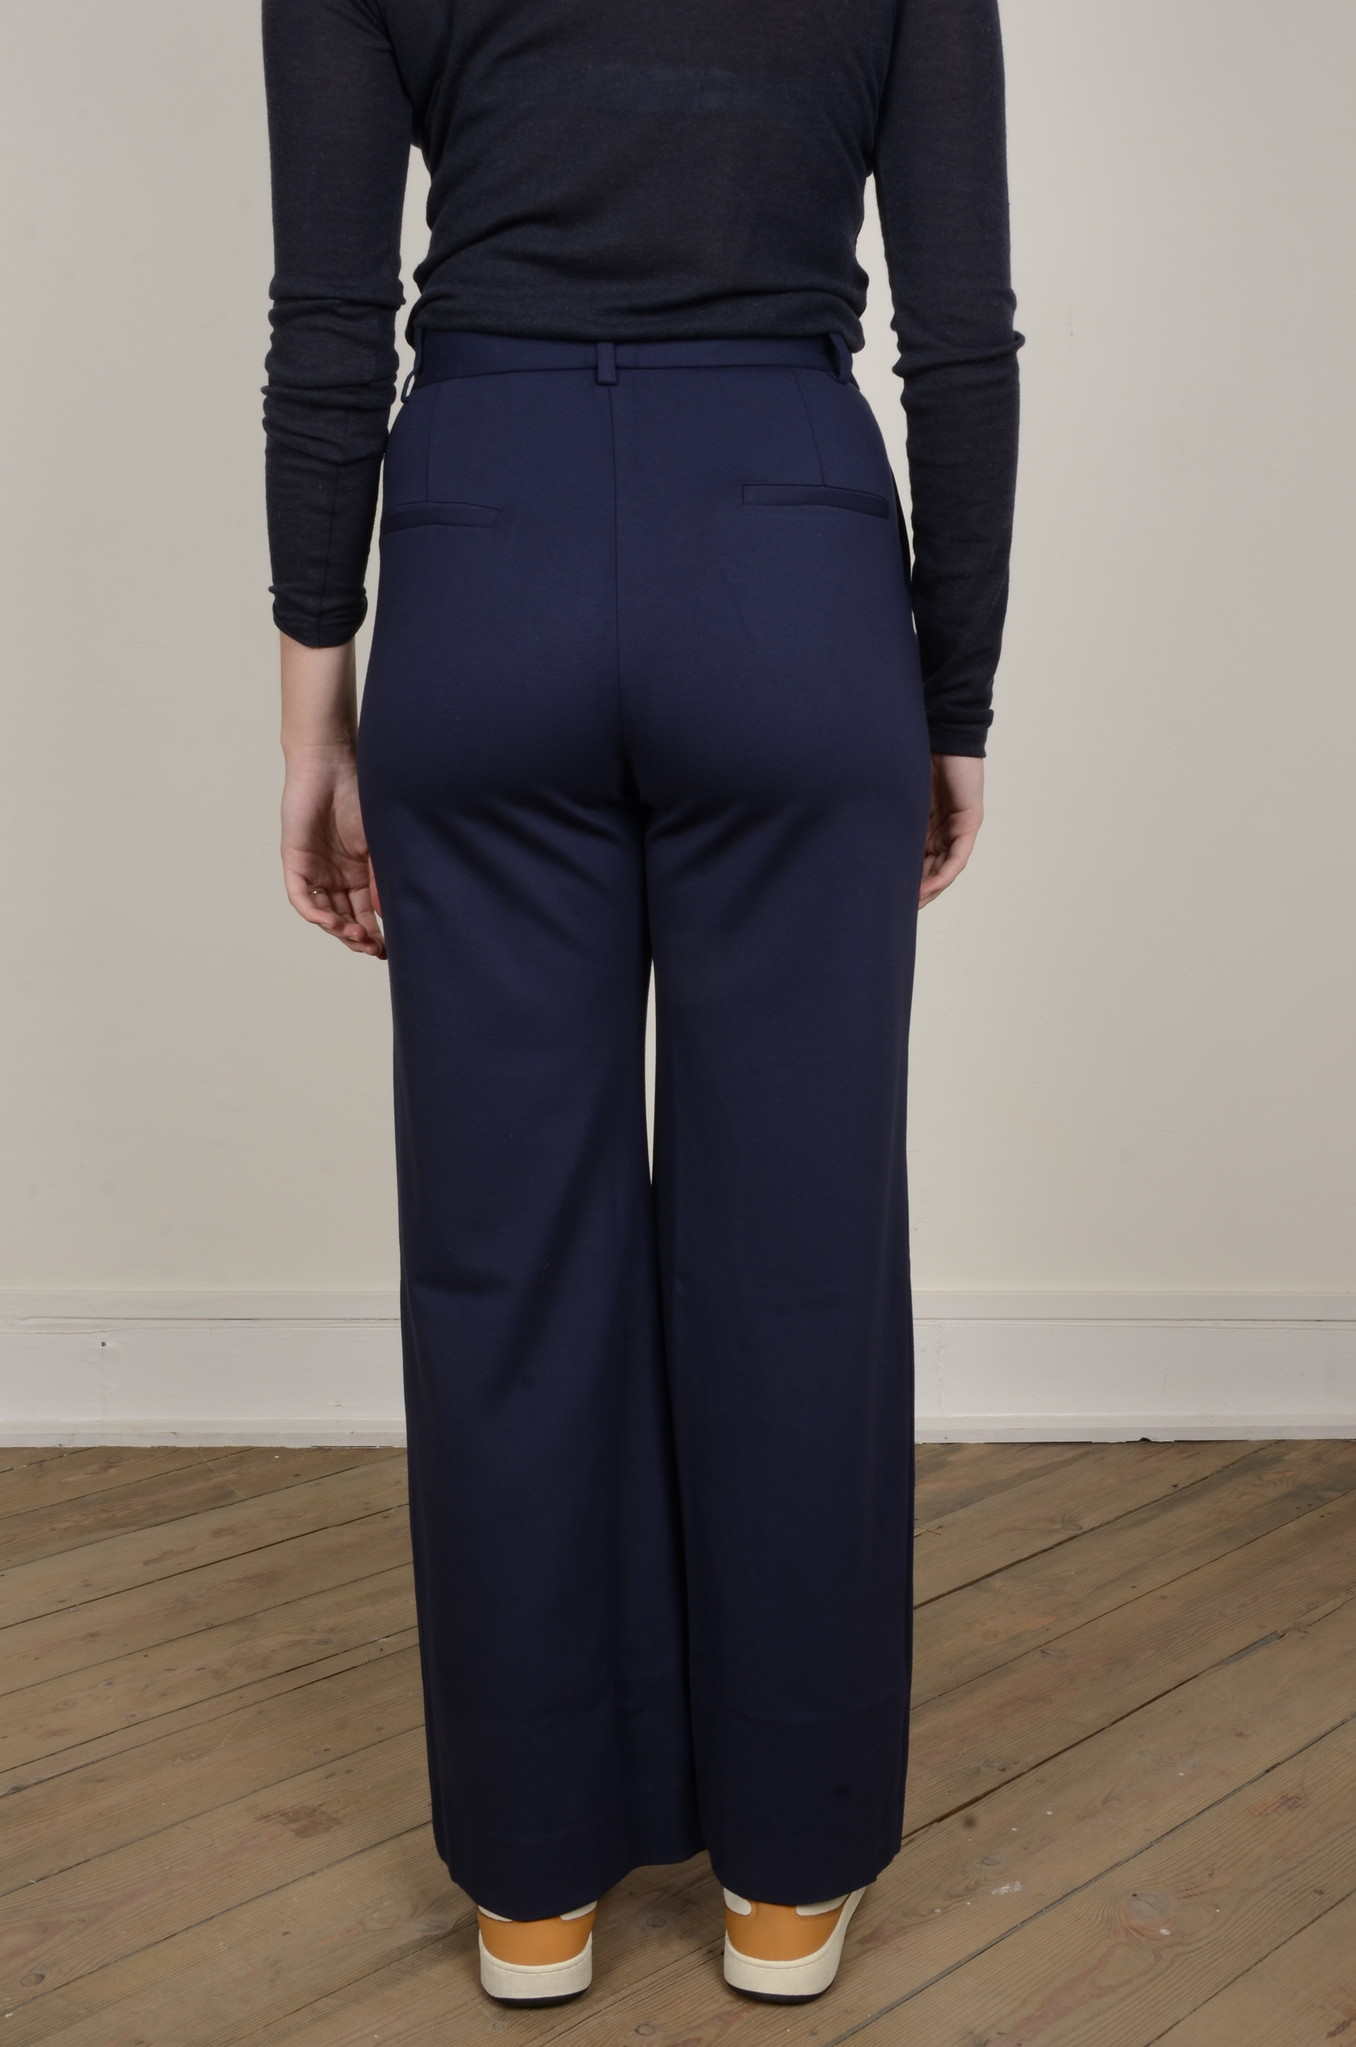 NAVY FLARED TROUSERS-3